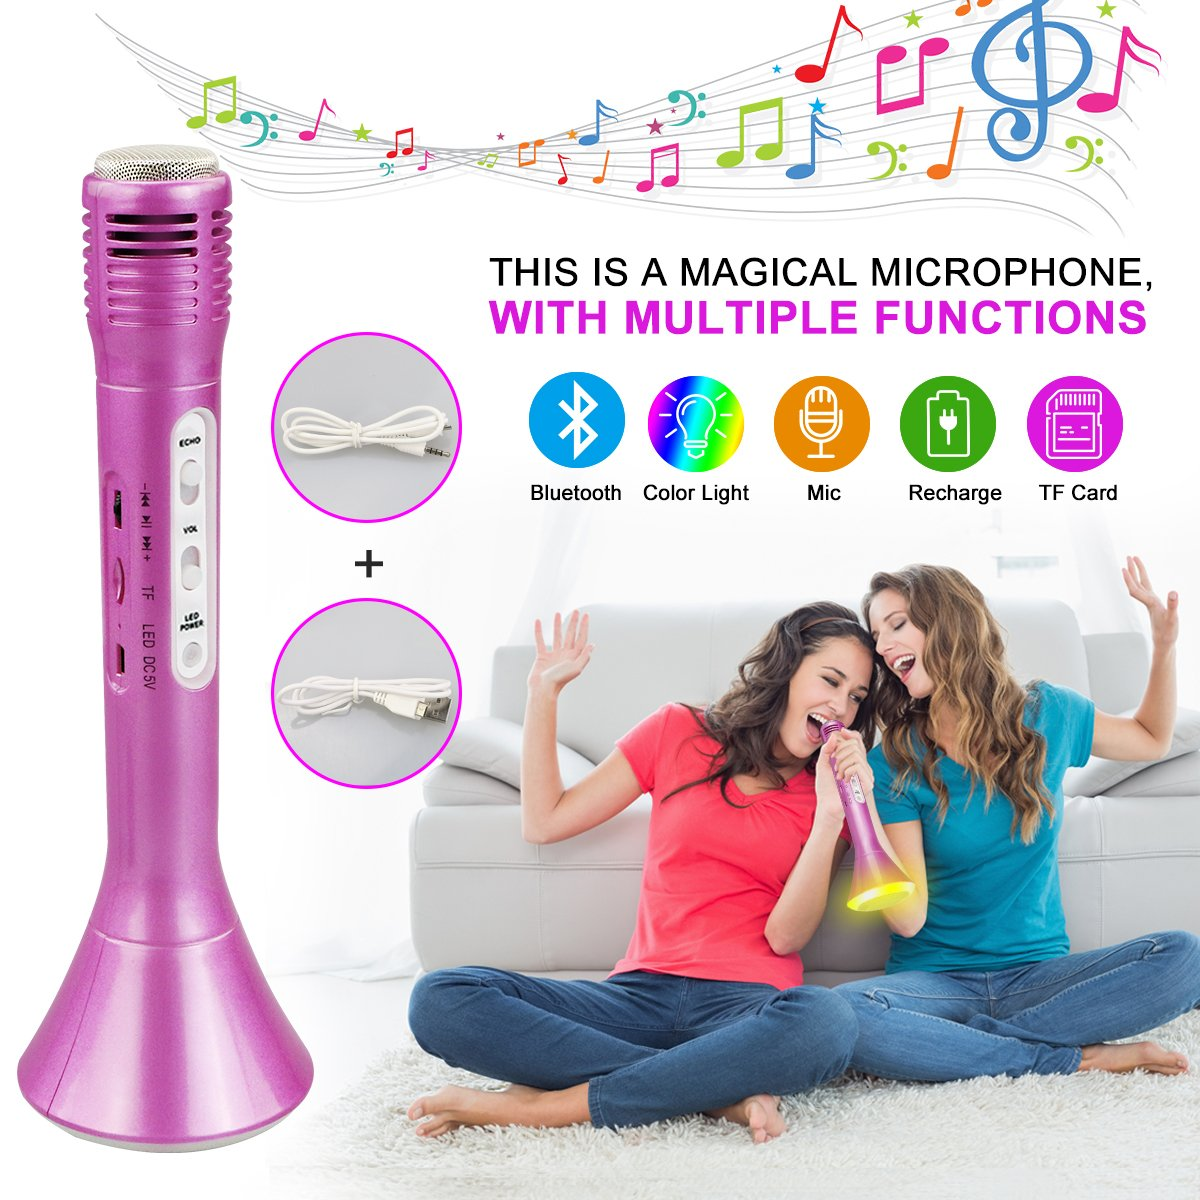 Bluetooth Karaoke Microphone, Wireless Portable Karaoke Player Machine, Color Changing LED Lights Speaker for Home Party Music Singing Playing - Support IPhone/Android IOS Smartphone/Tablet Compatible